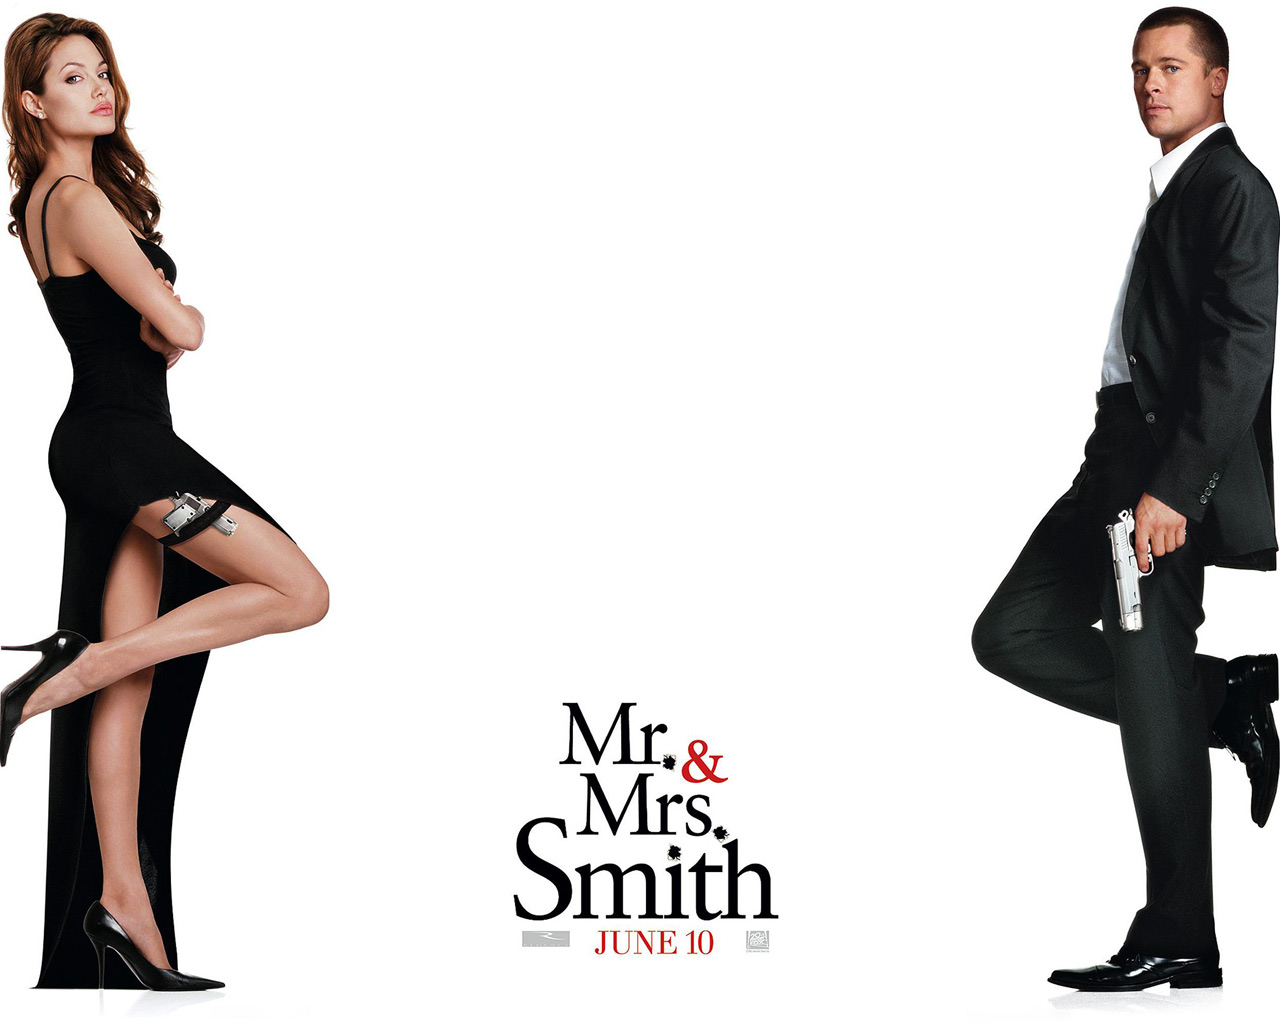 Mr Mrs Smith Wallpapers Movie Hq Mr Mrs Smith Pictures 4k Wallpapers 2019